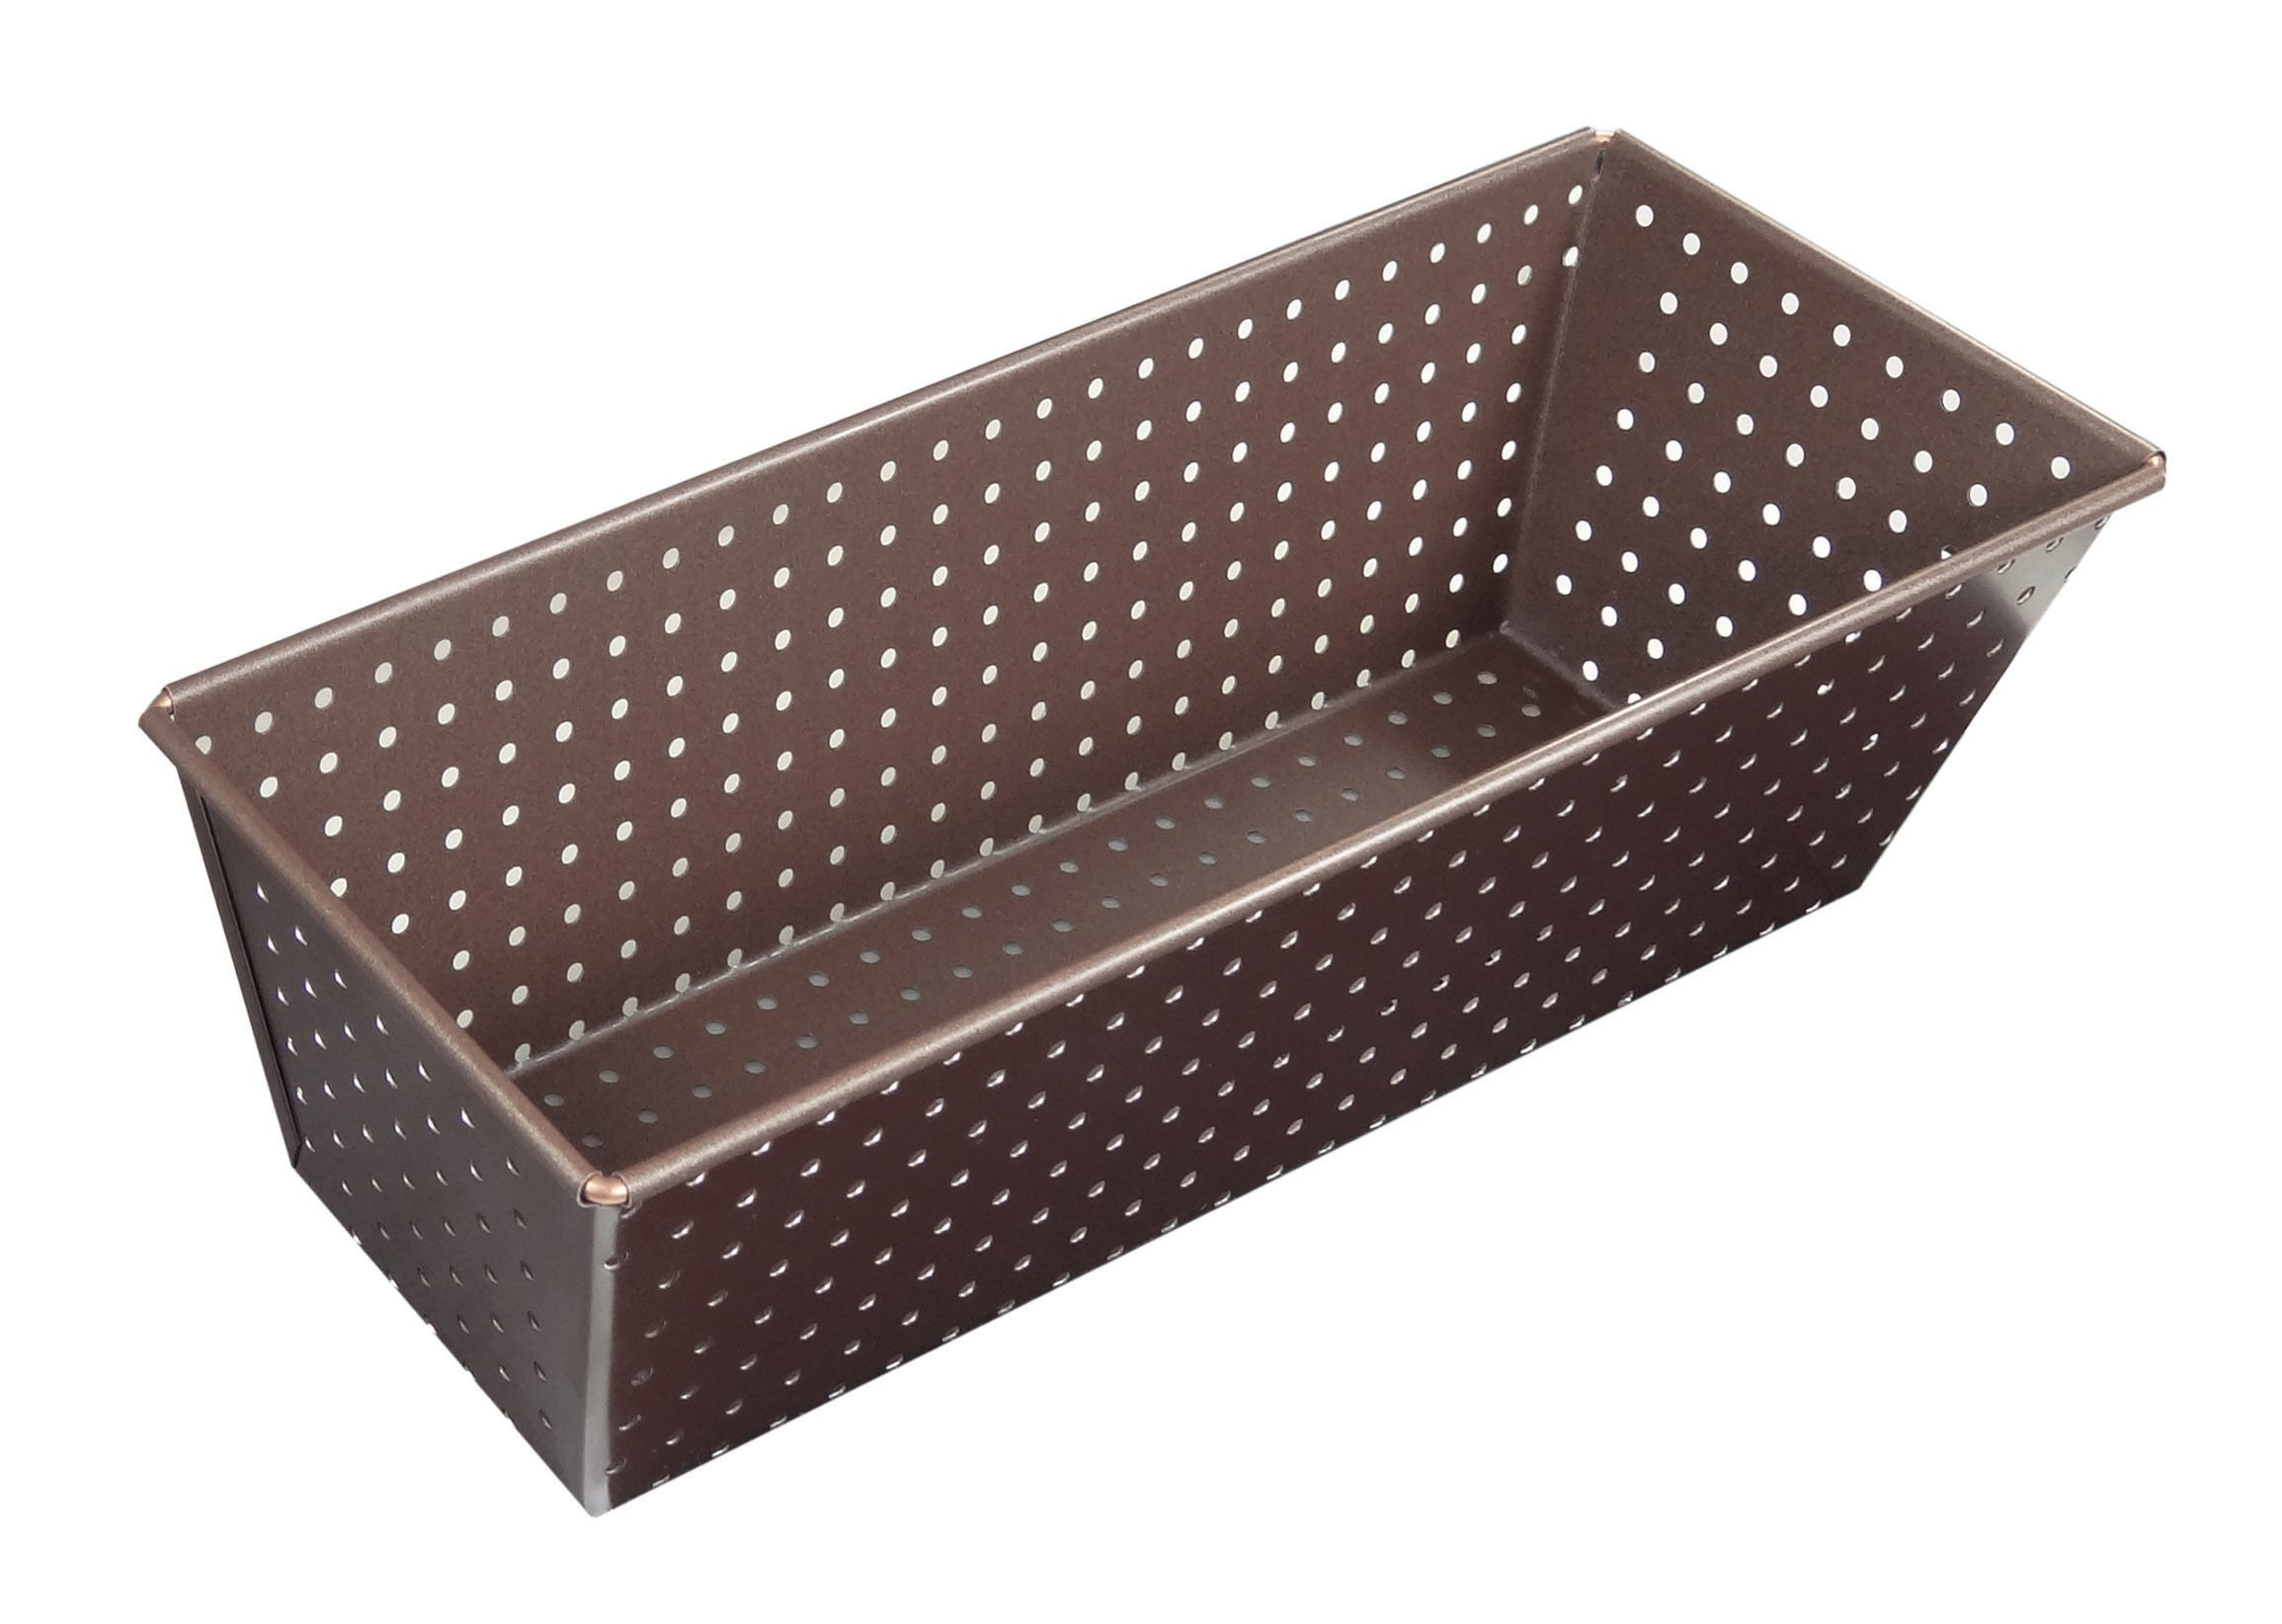 Paderno World Cuisine A4982313 Non-Stick Perforated Loaf Pan, Brown by Paderno World Cuisine (Image #1)